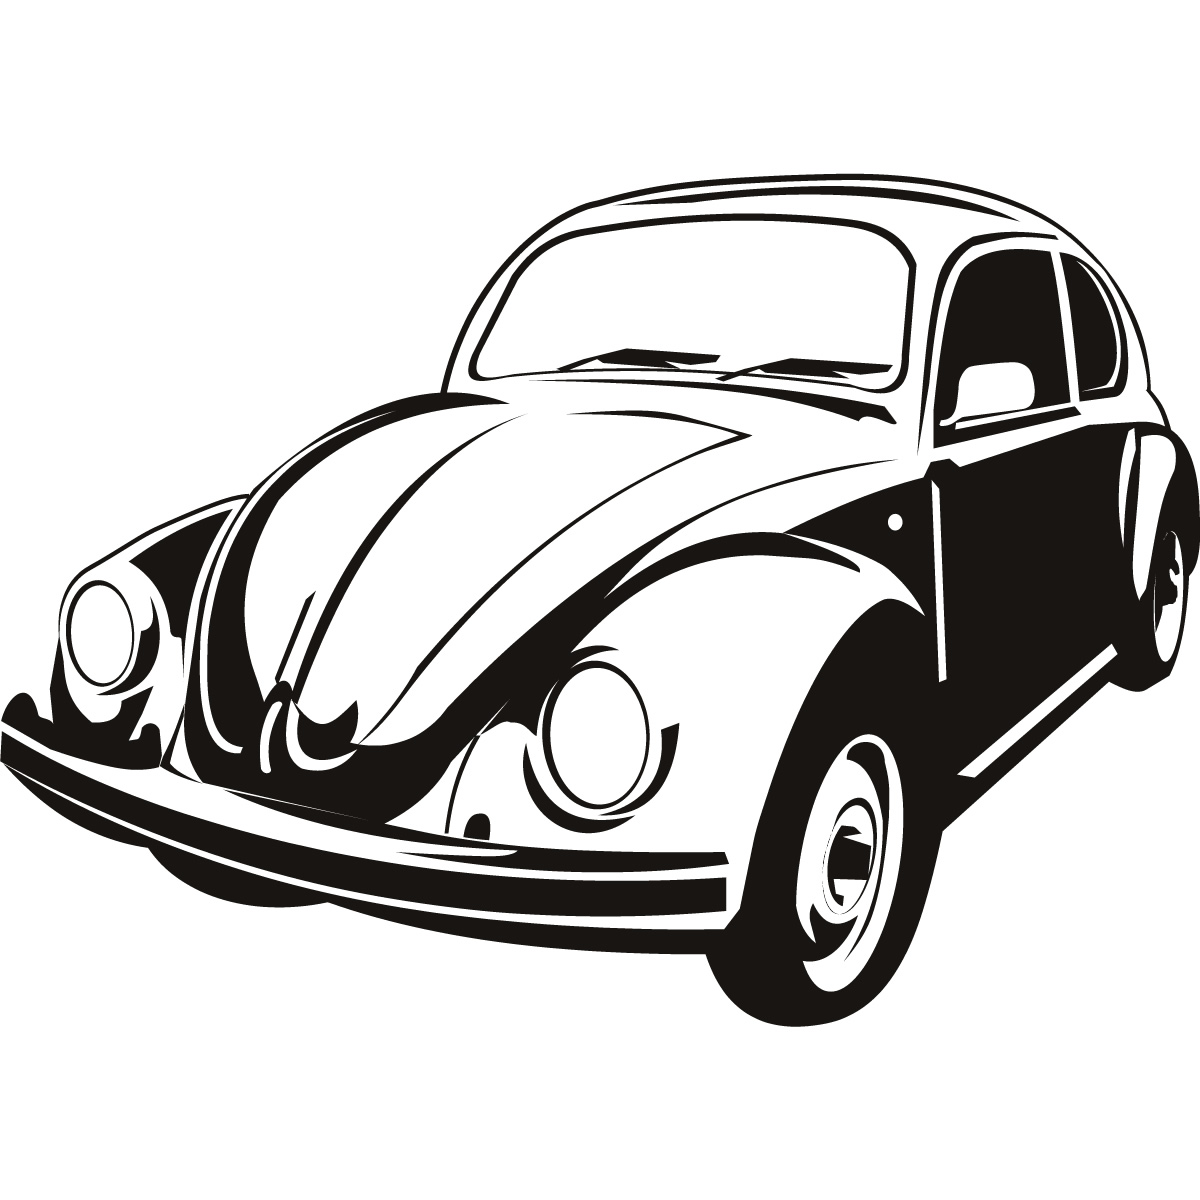 Vw beetle clipart graphic royalty free Free Volkswagen Beetle Cliparts, Download Free Clip Art ... graphic royalty free